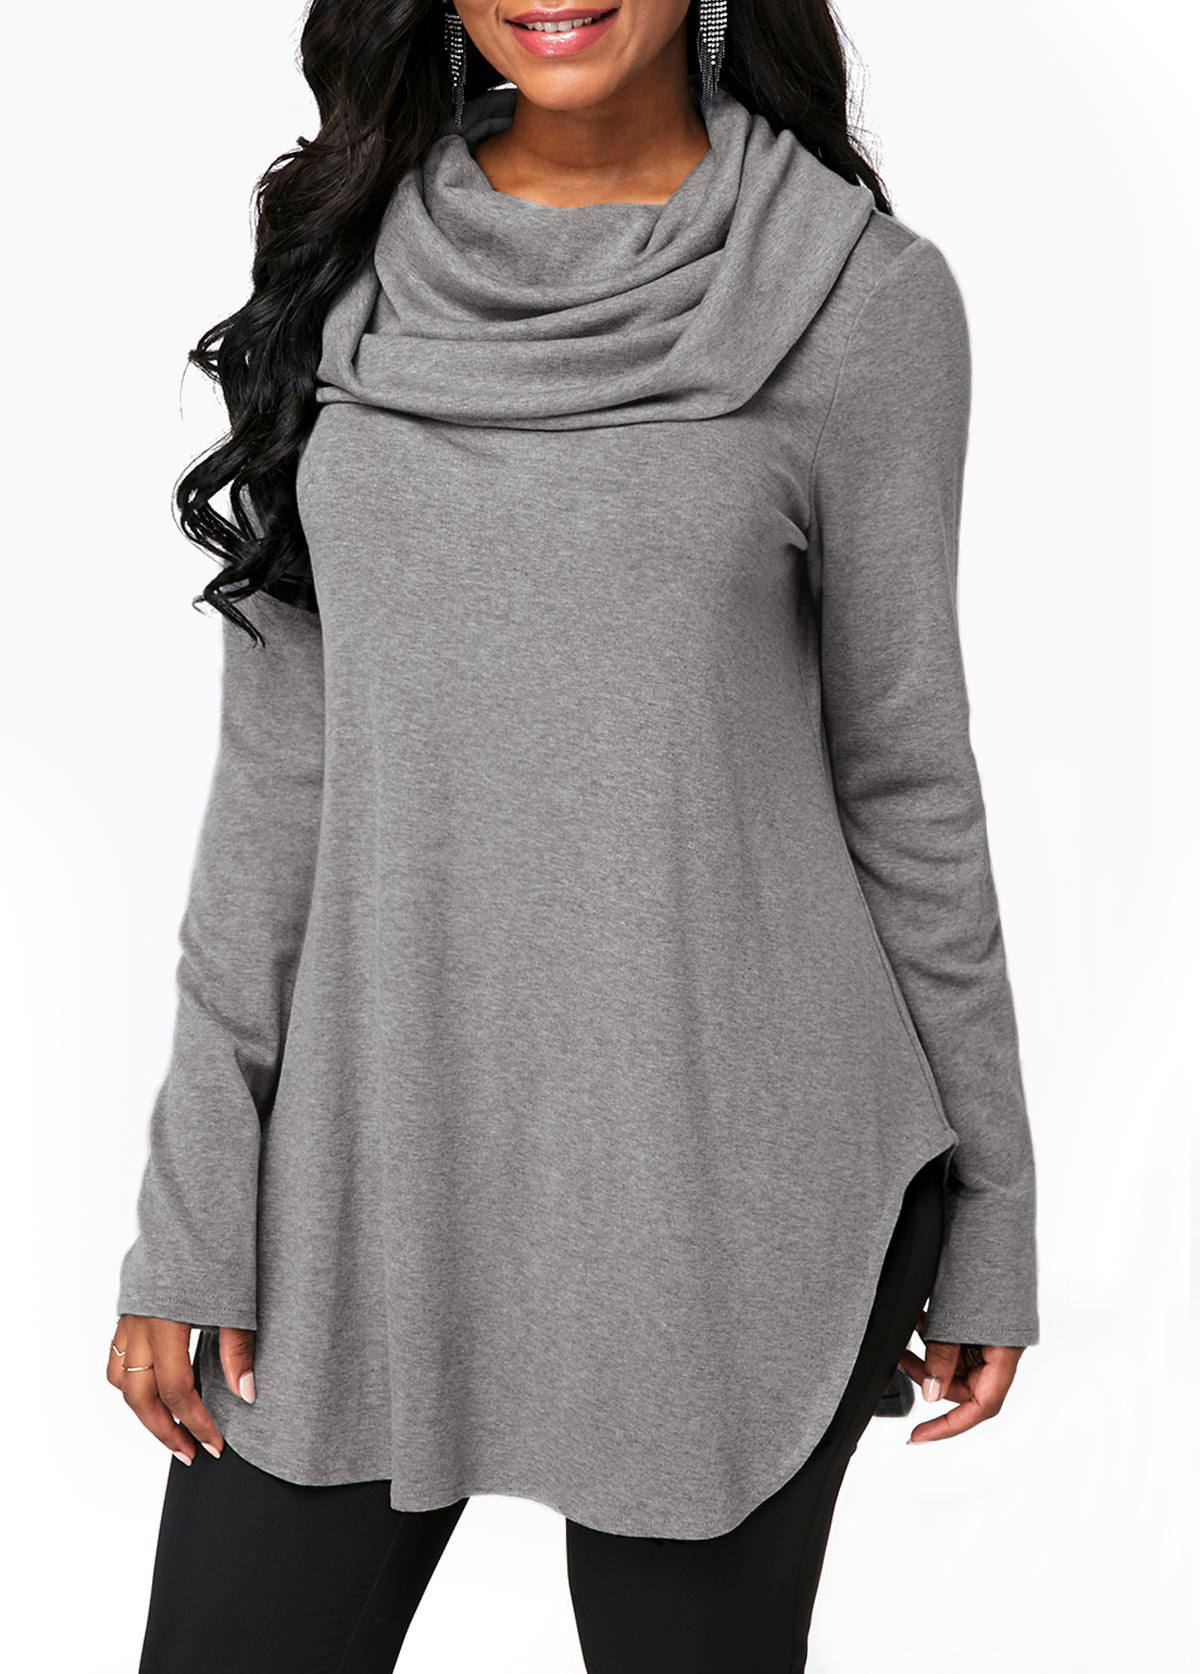 Grey Long Sleeve Cowl Neck Sweatshirt